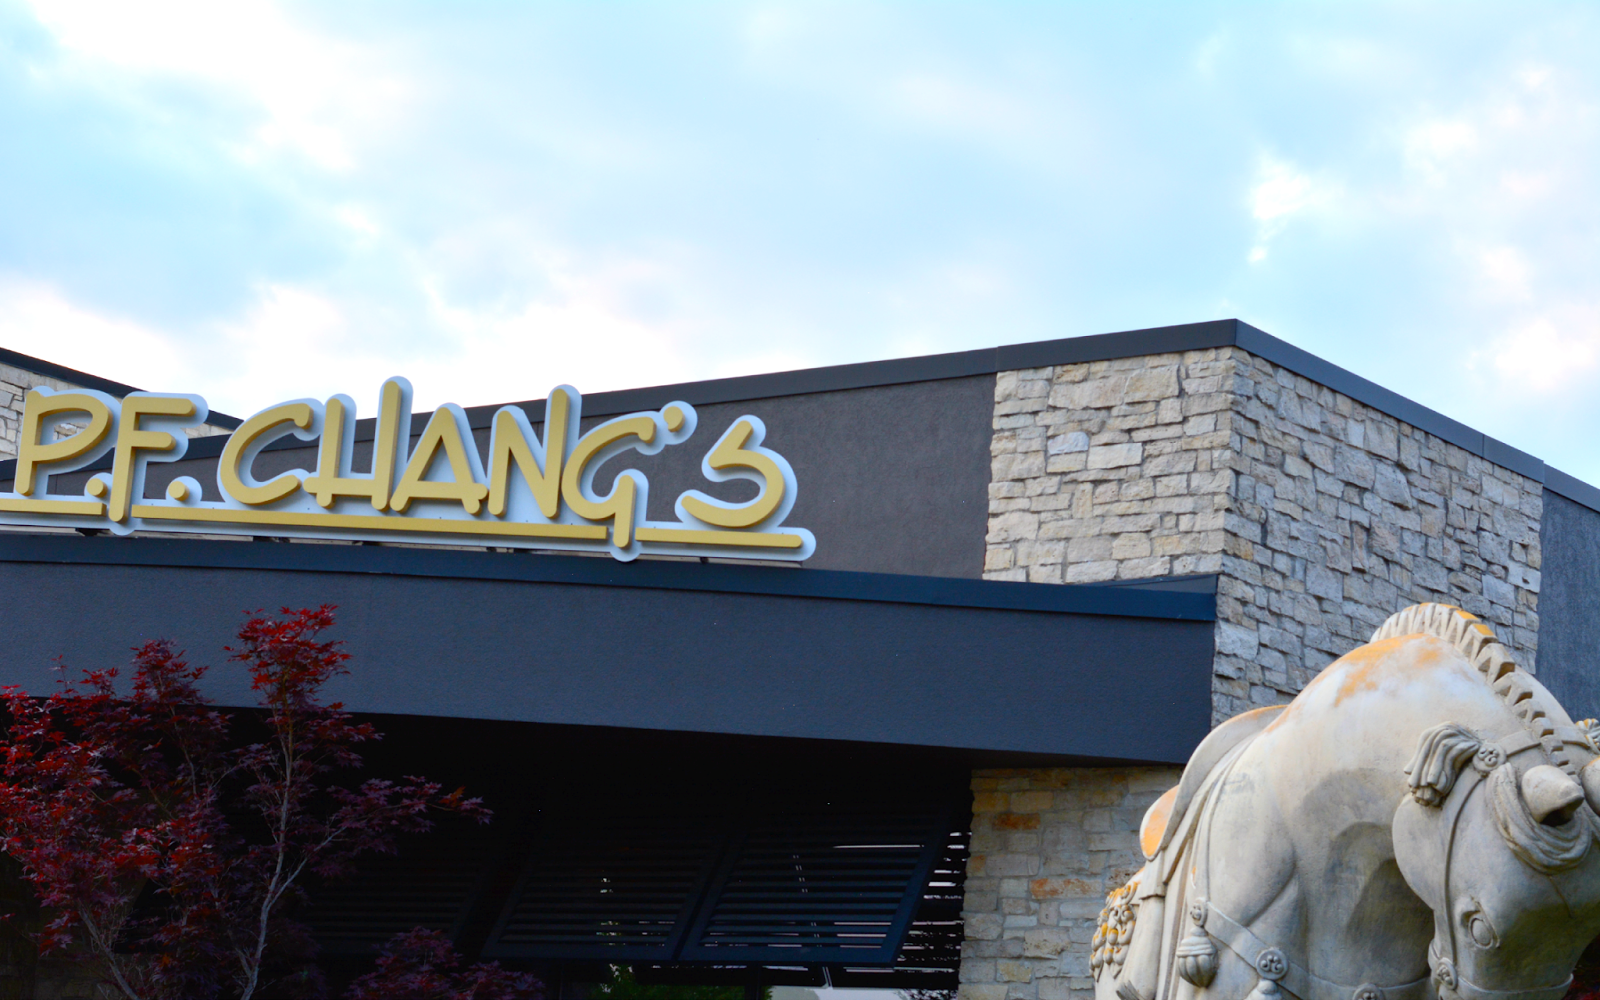 p.f. chang's in northbrook illinois chicago